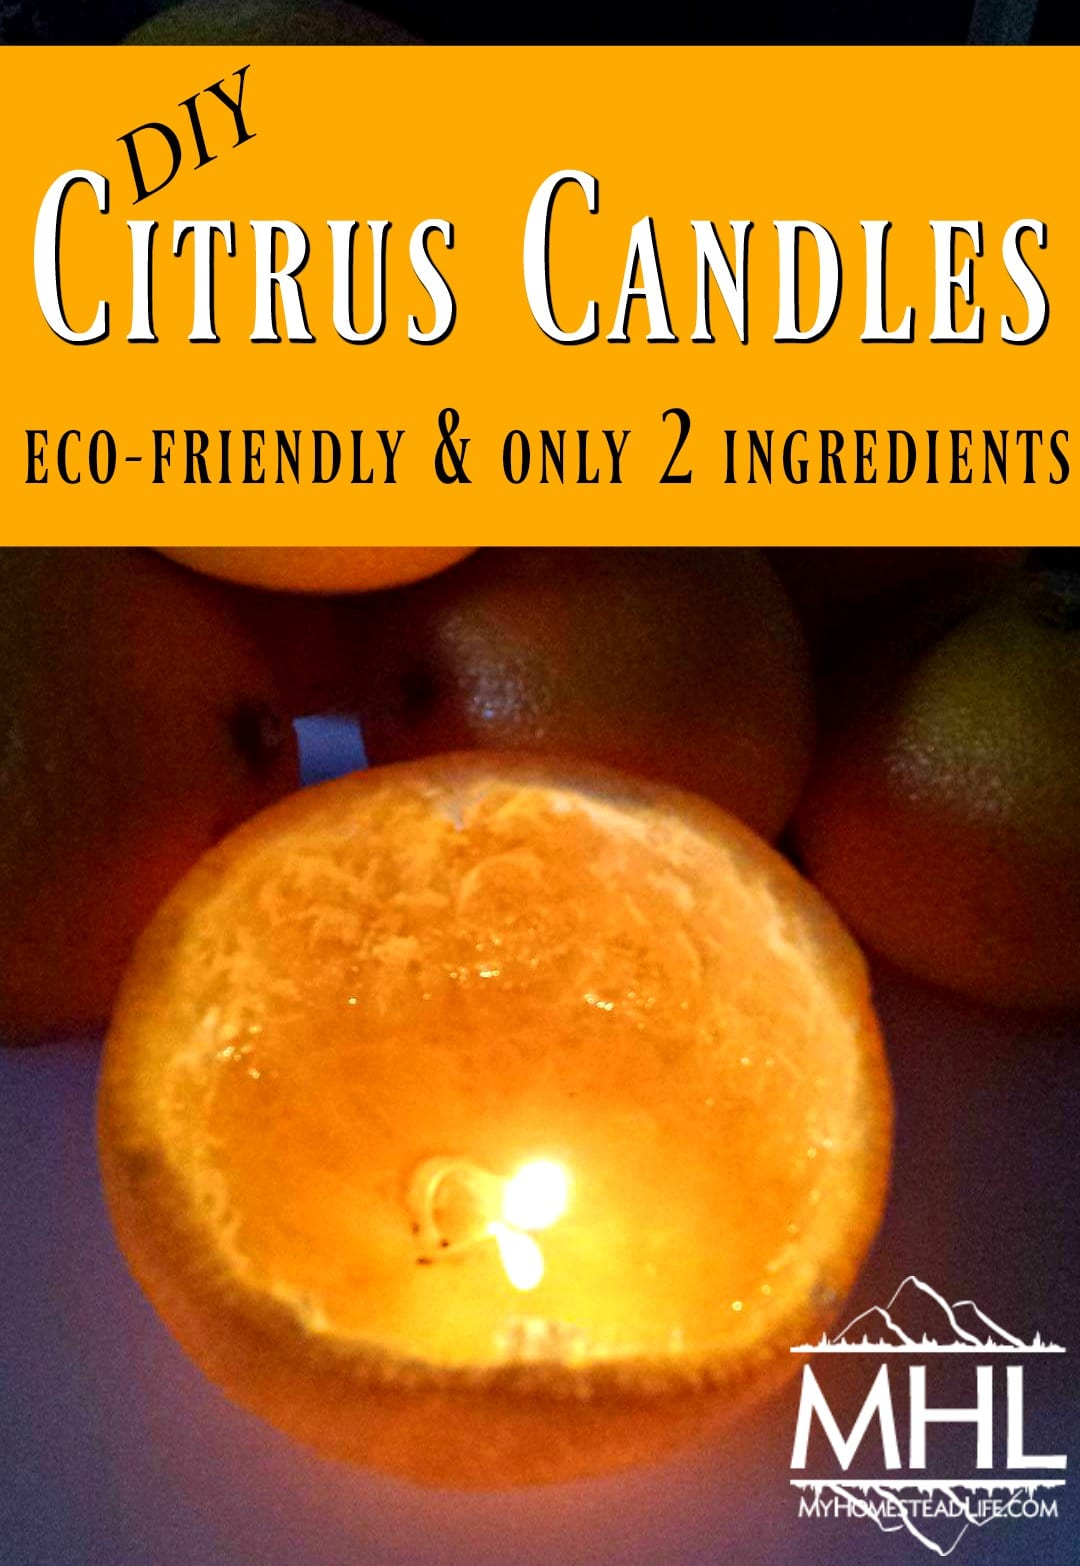 DIY Citrus Candles. Eco-Friendly, Easy to Make and only 2 Ingredients!